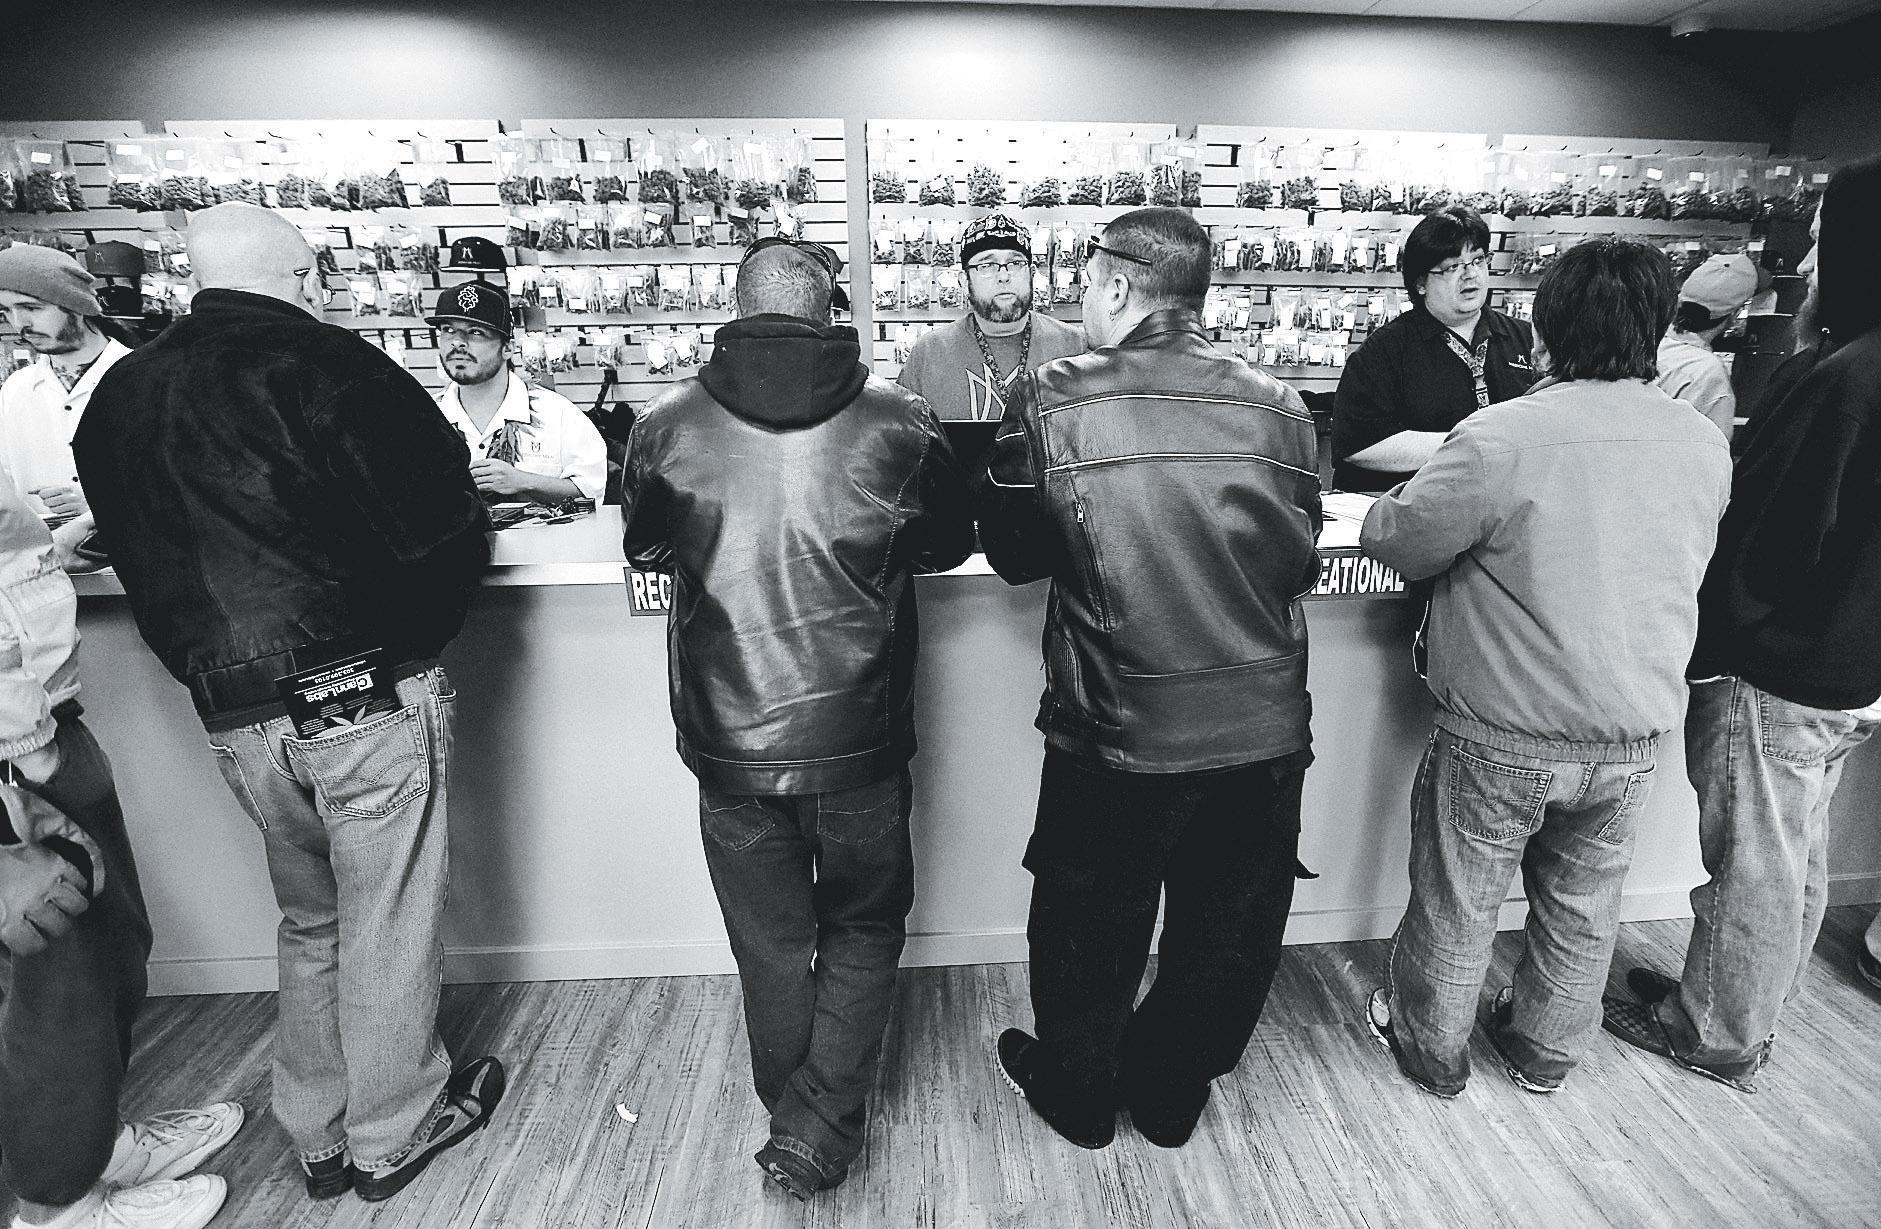 Image of legal marijuana sales in a recreational dispensary in Colorado